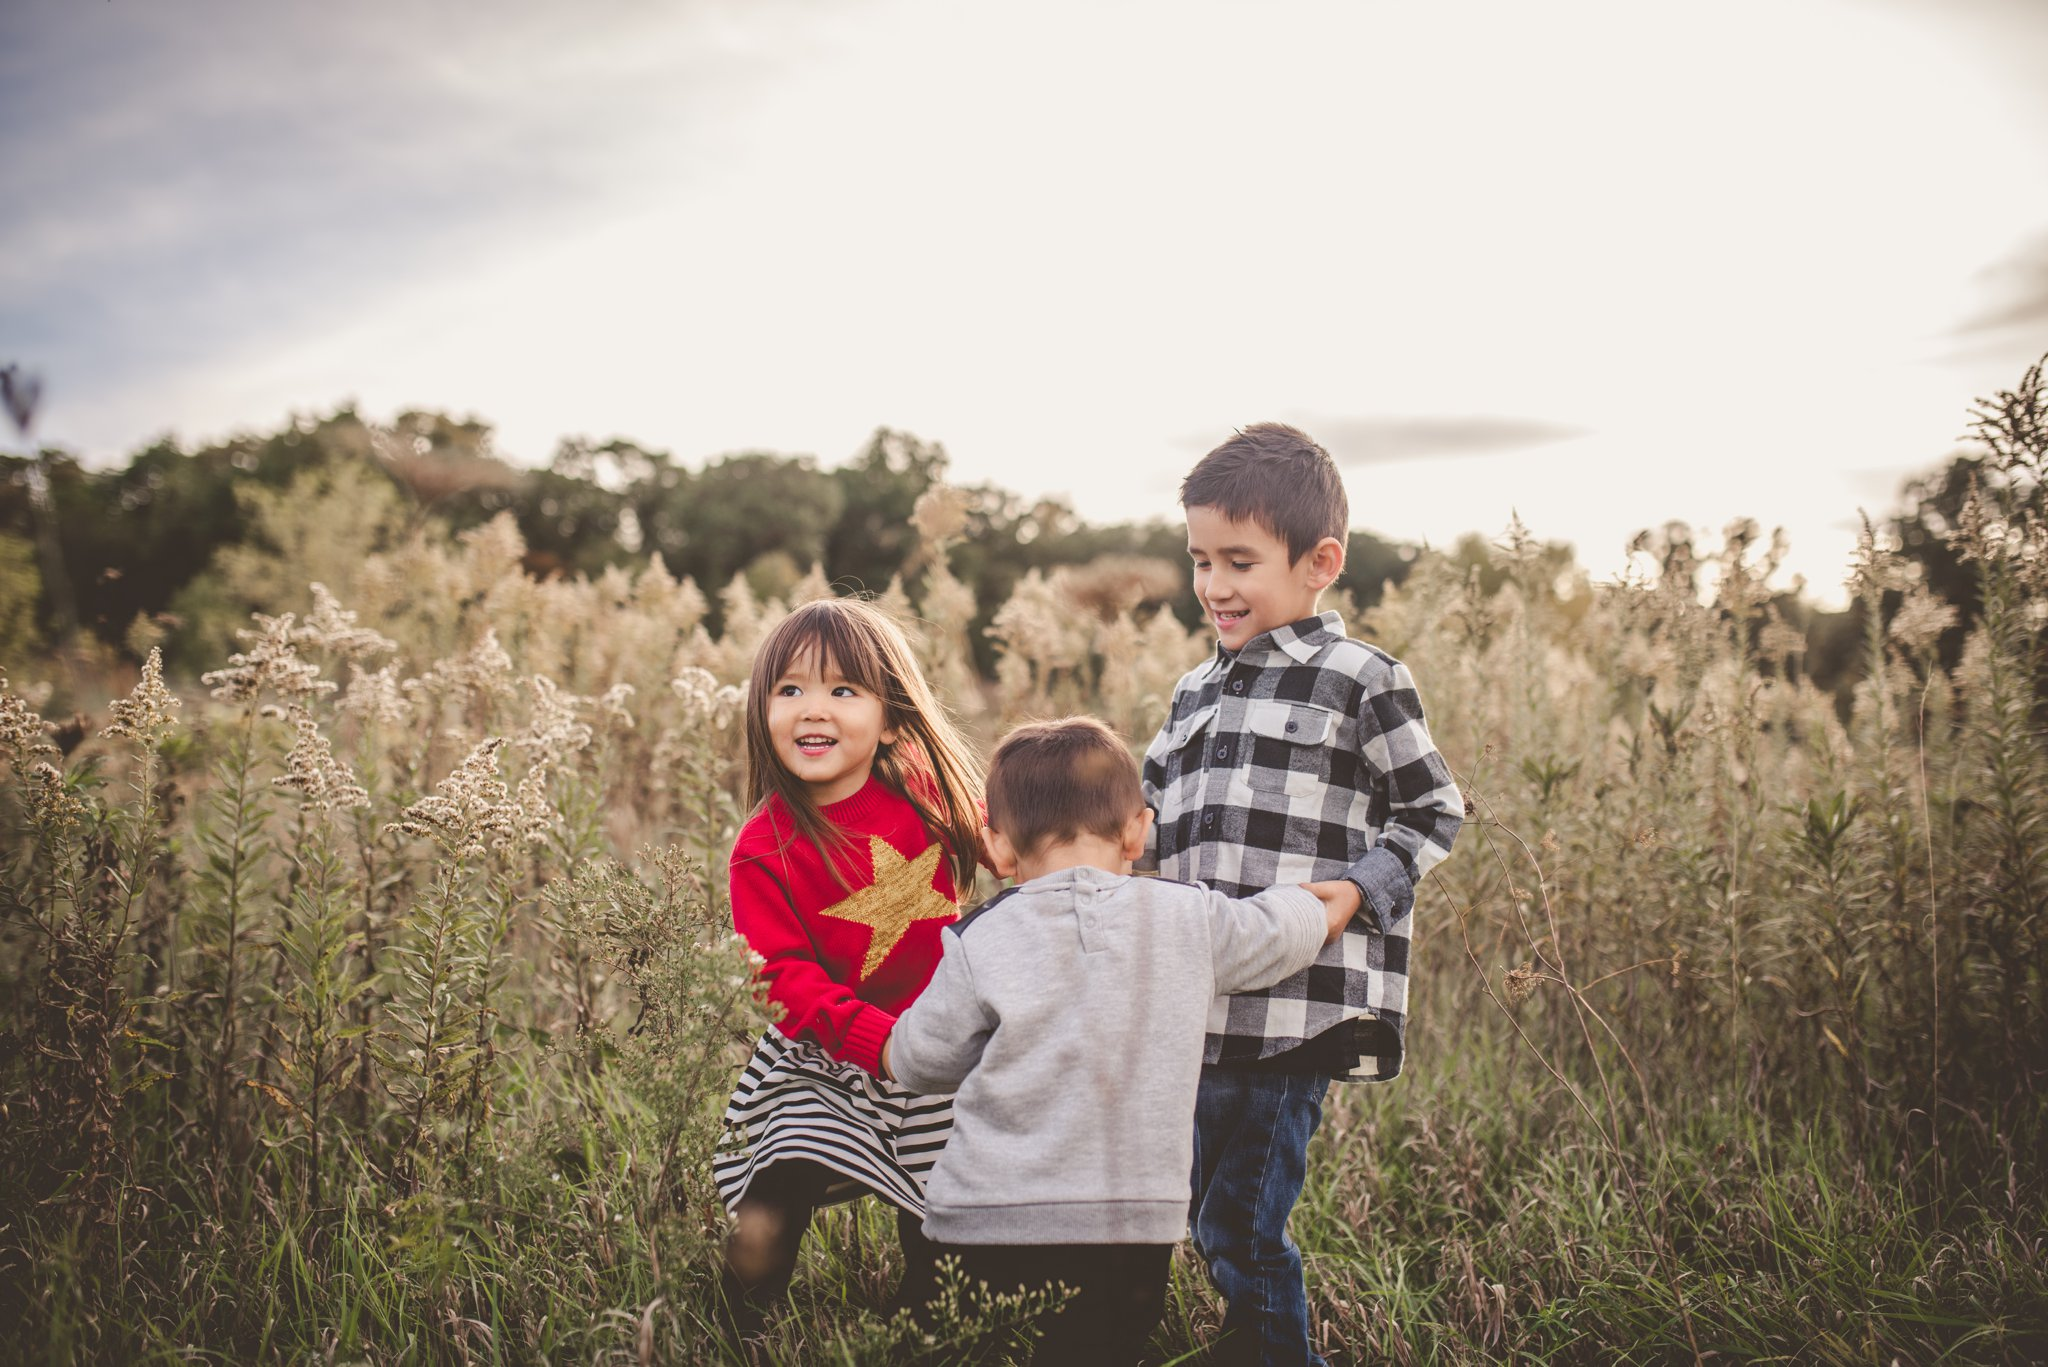 moh family photography waunakee wi sibling photo.jpg